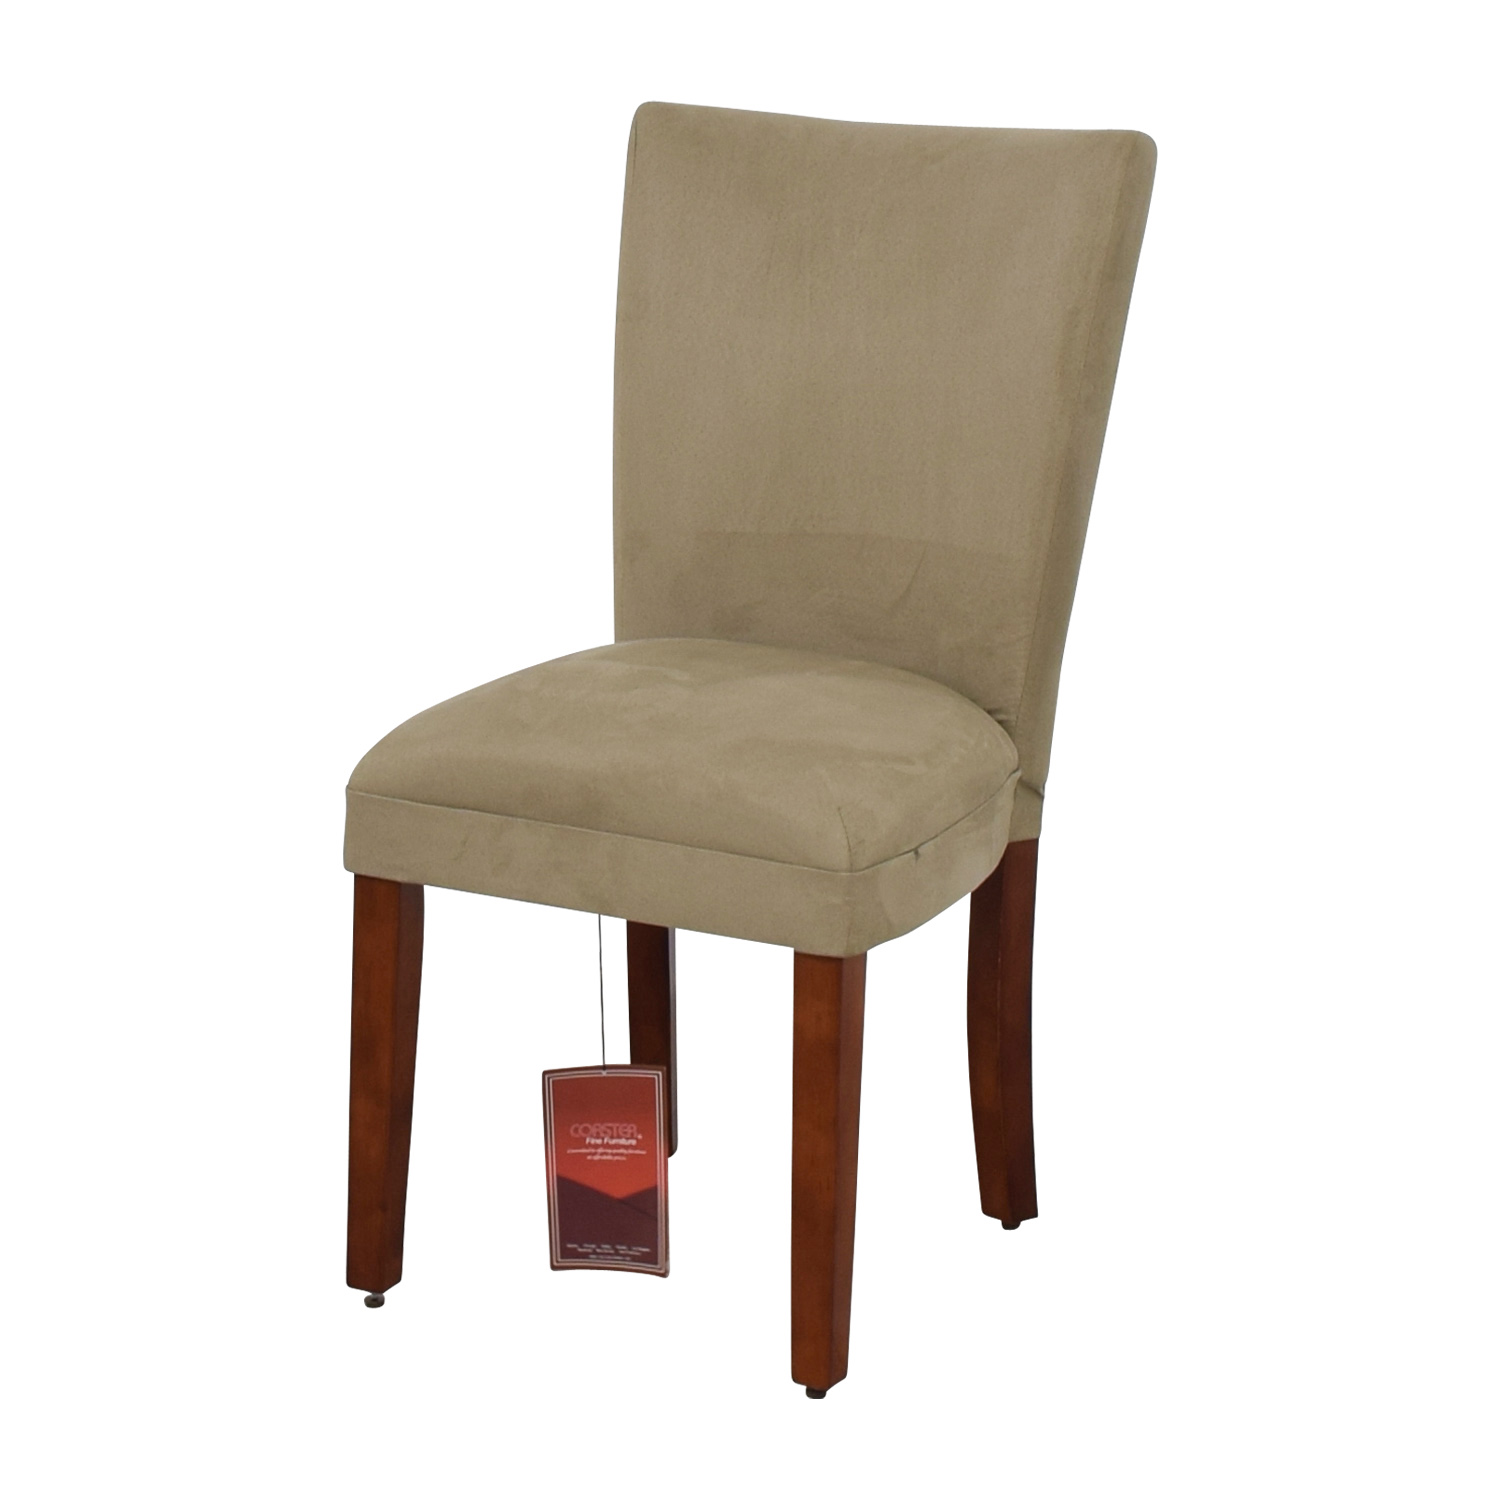 buy Coaster Coaster High Back Parsons Chair in Taupe Microfiber Fabric online